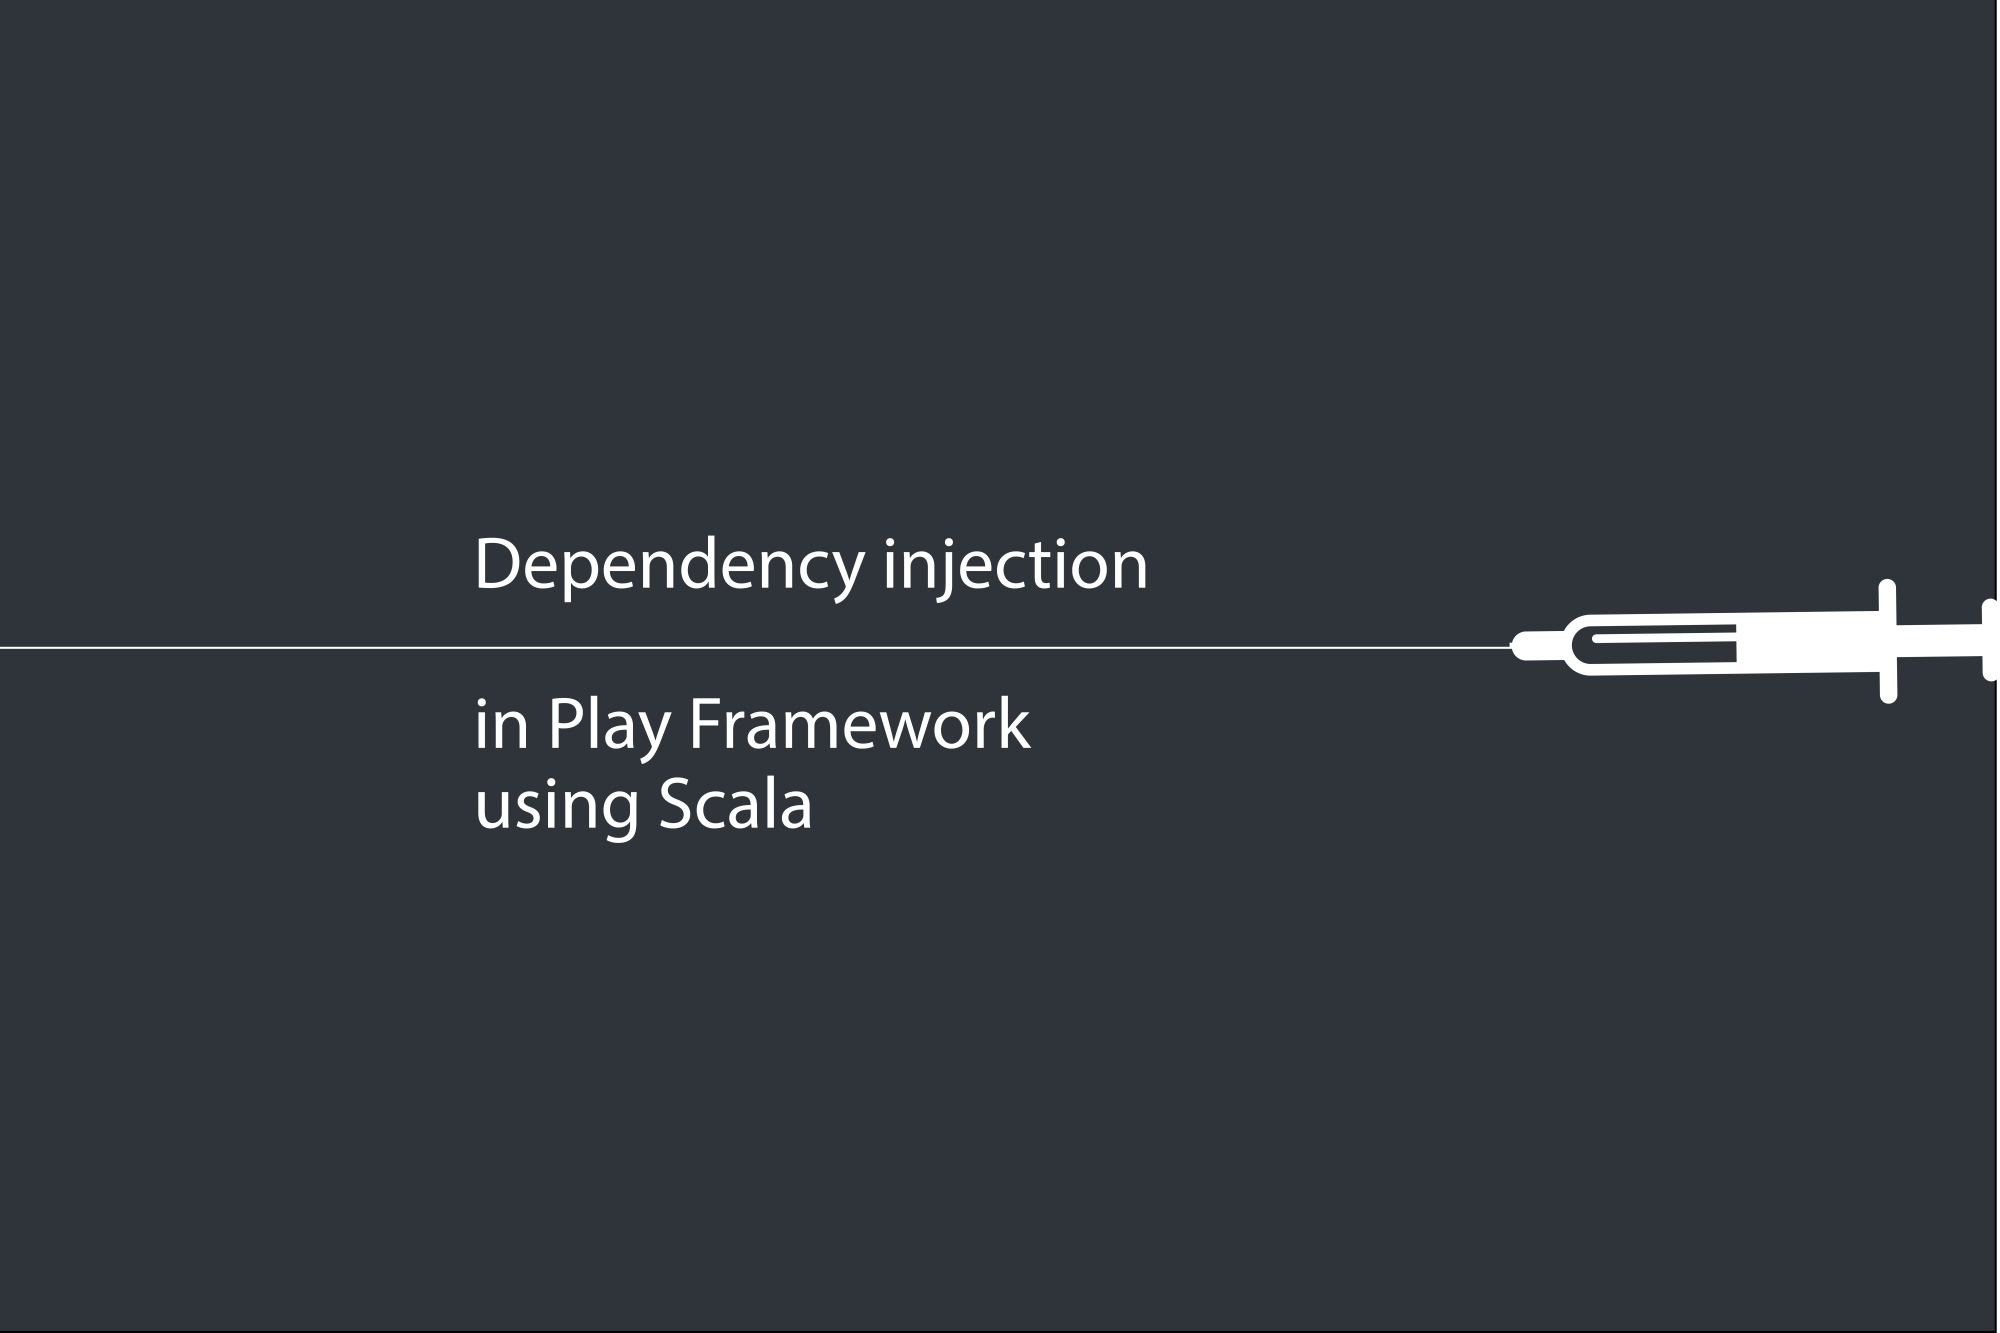 Dependency injection in Play Framework using Scala